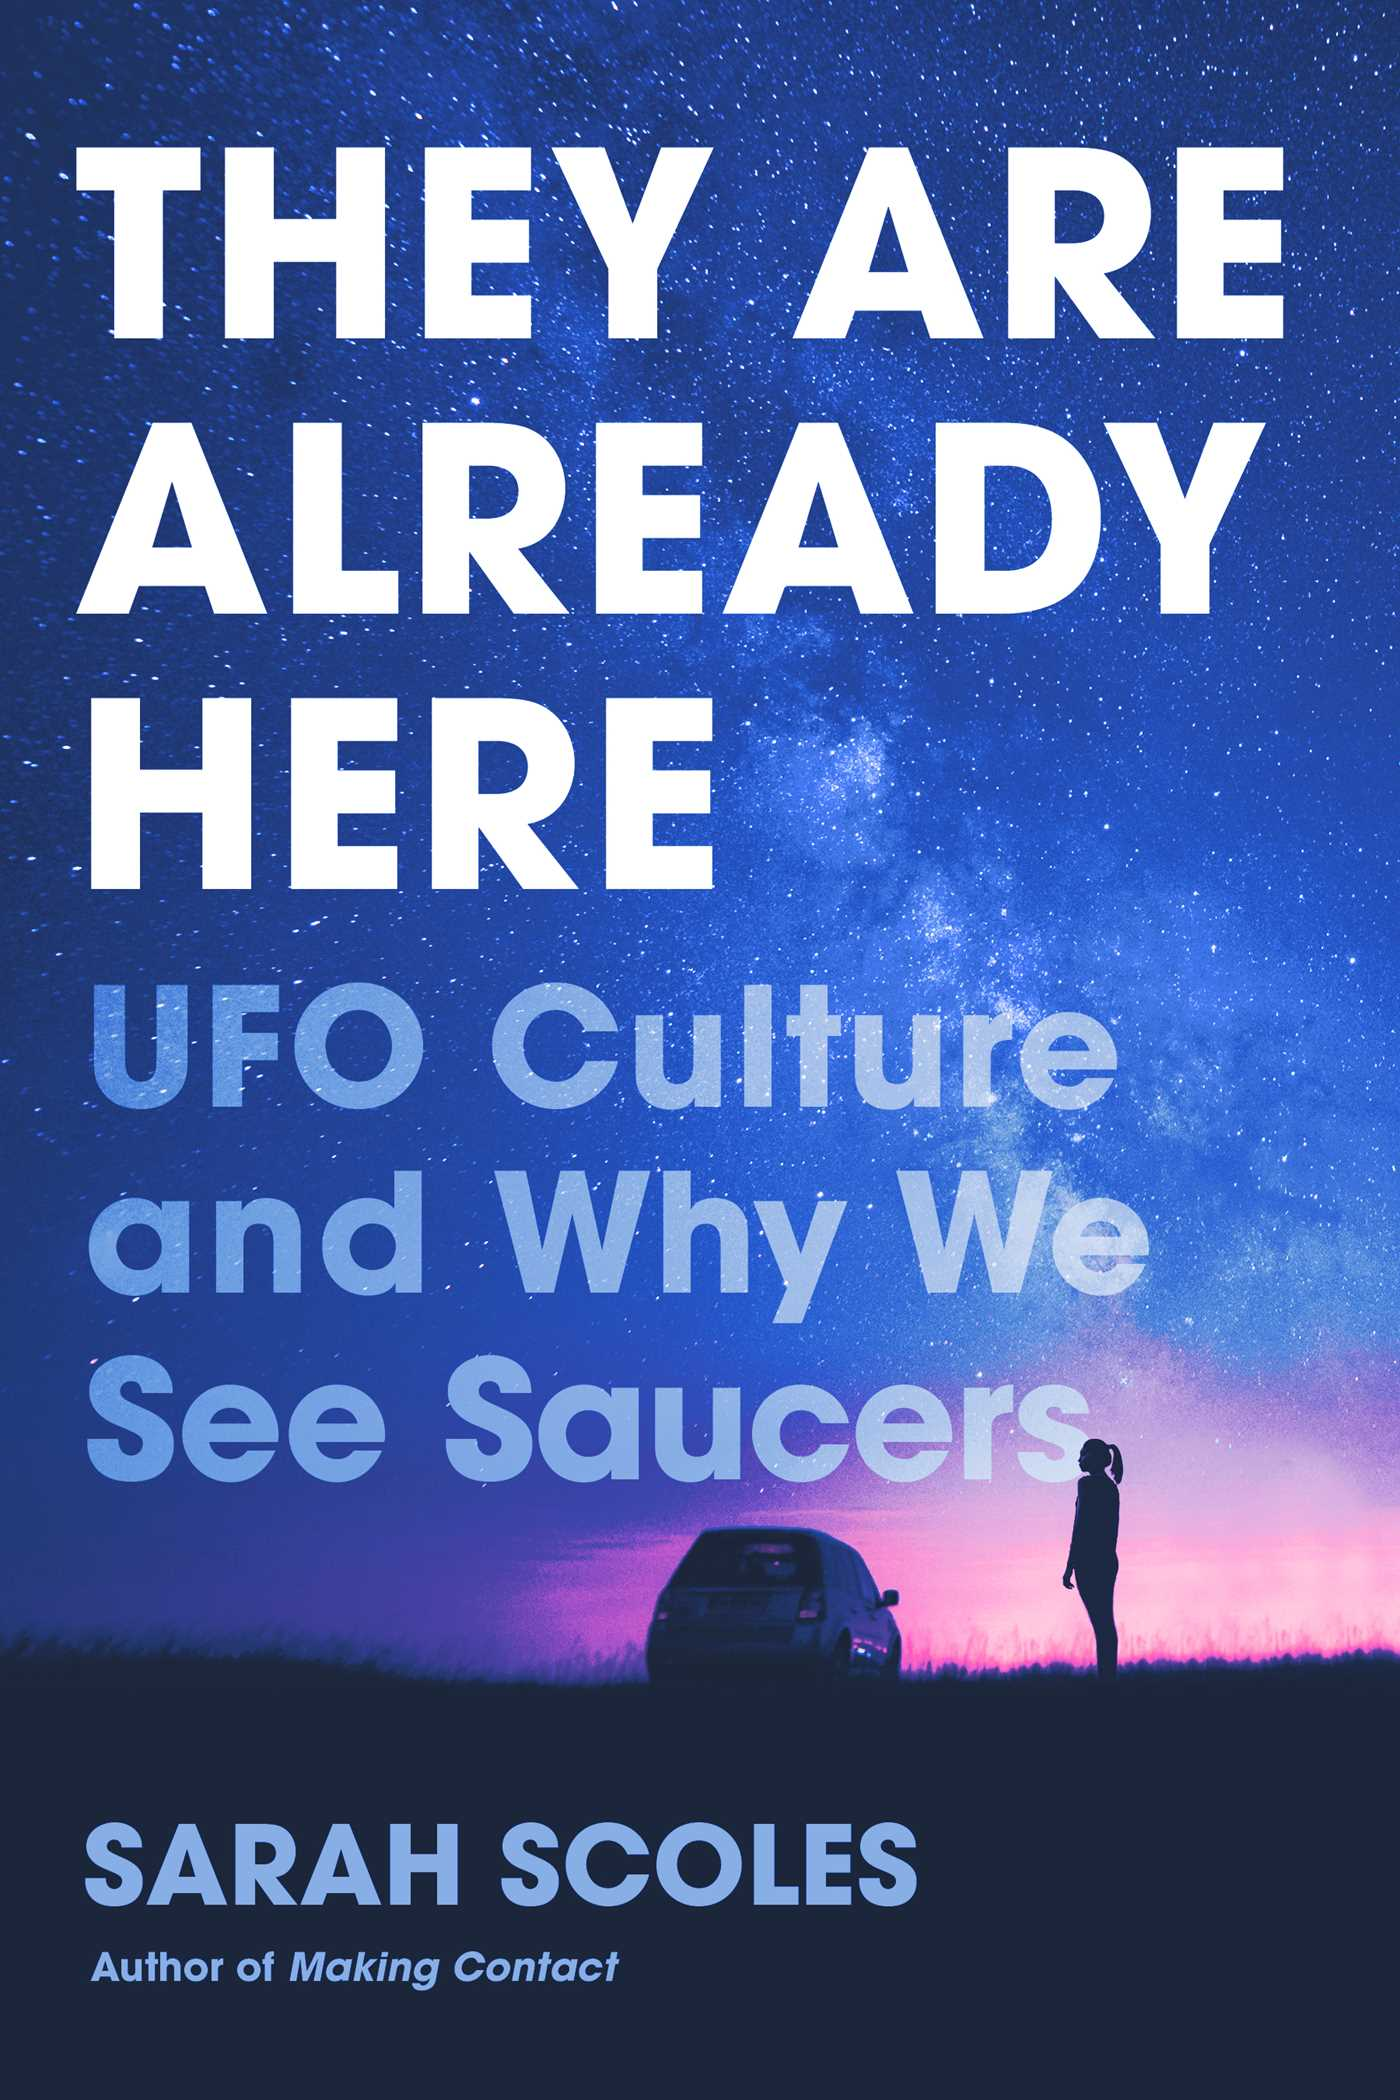 [PDF] [EPUB] They Are Already Here: UFO Culture and Why We See Saucers Download by Sarah Scoles